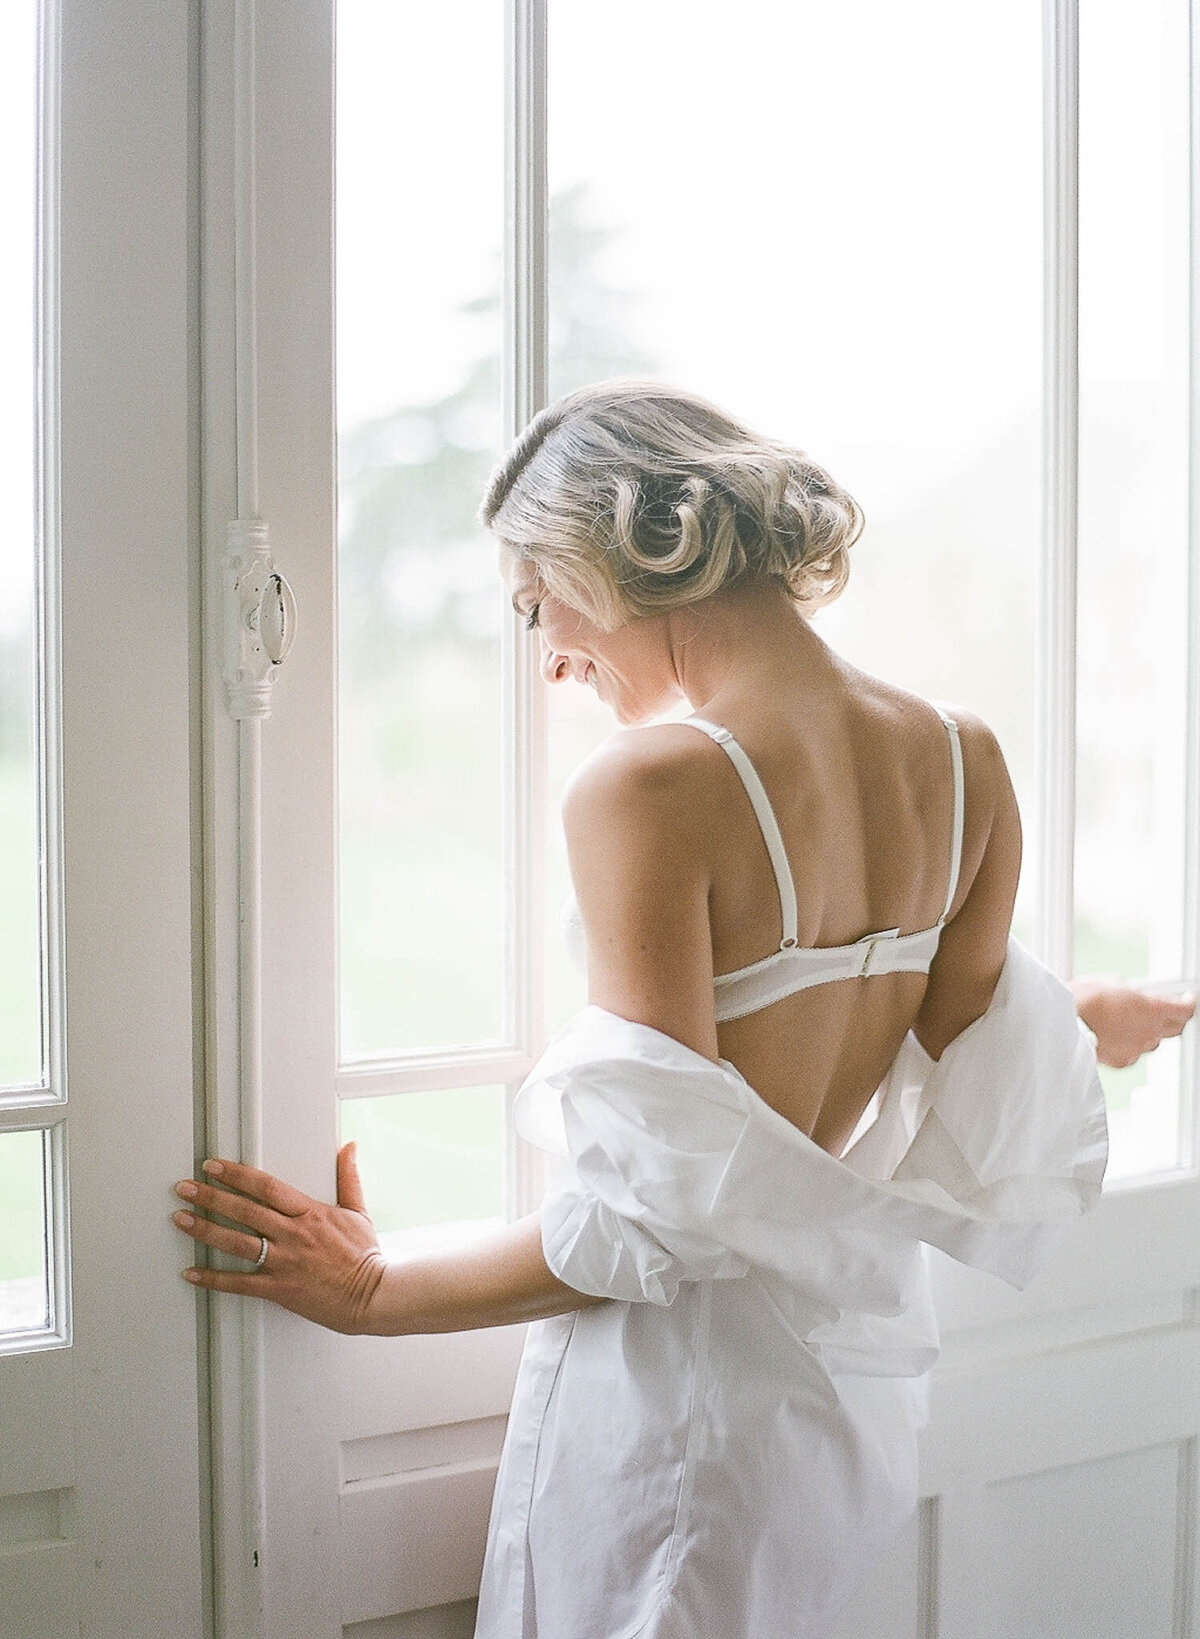 chateau-de-varennes-boudoir-wedding-couple-17